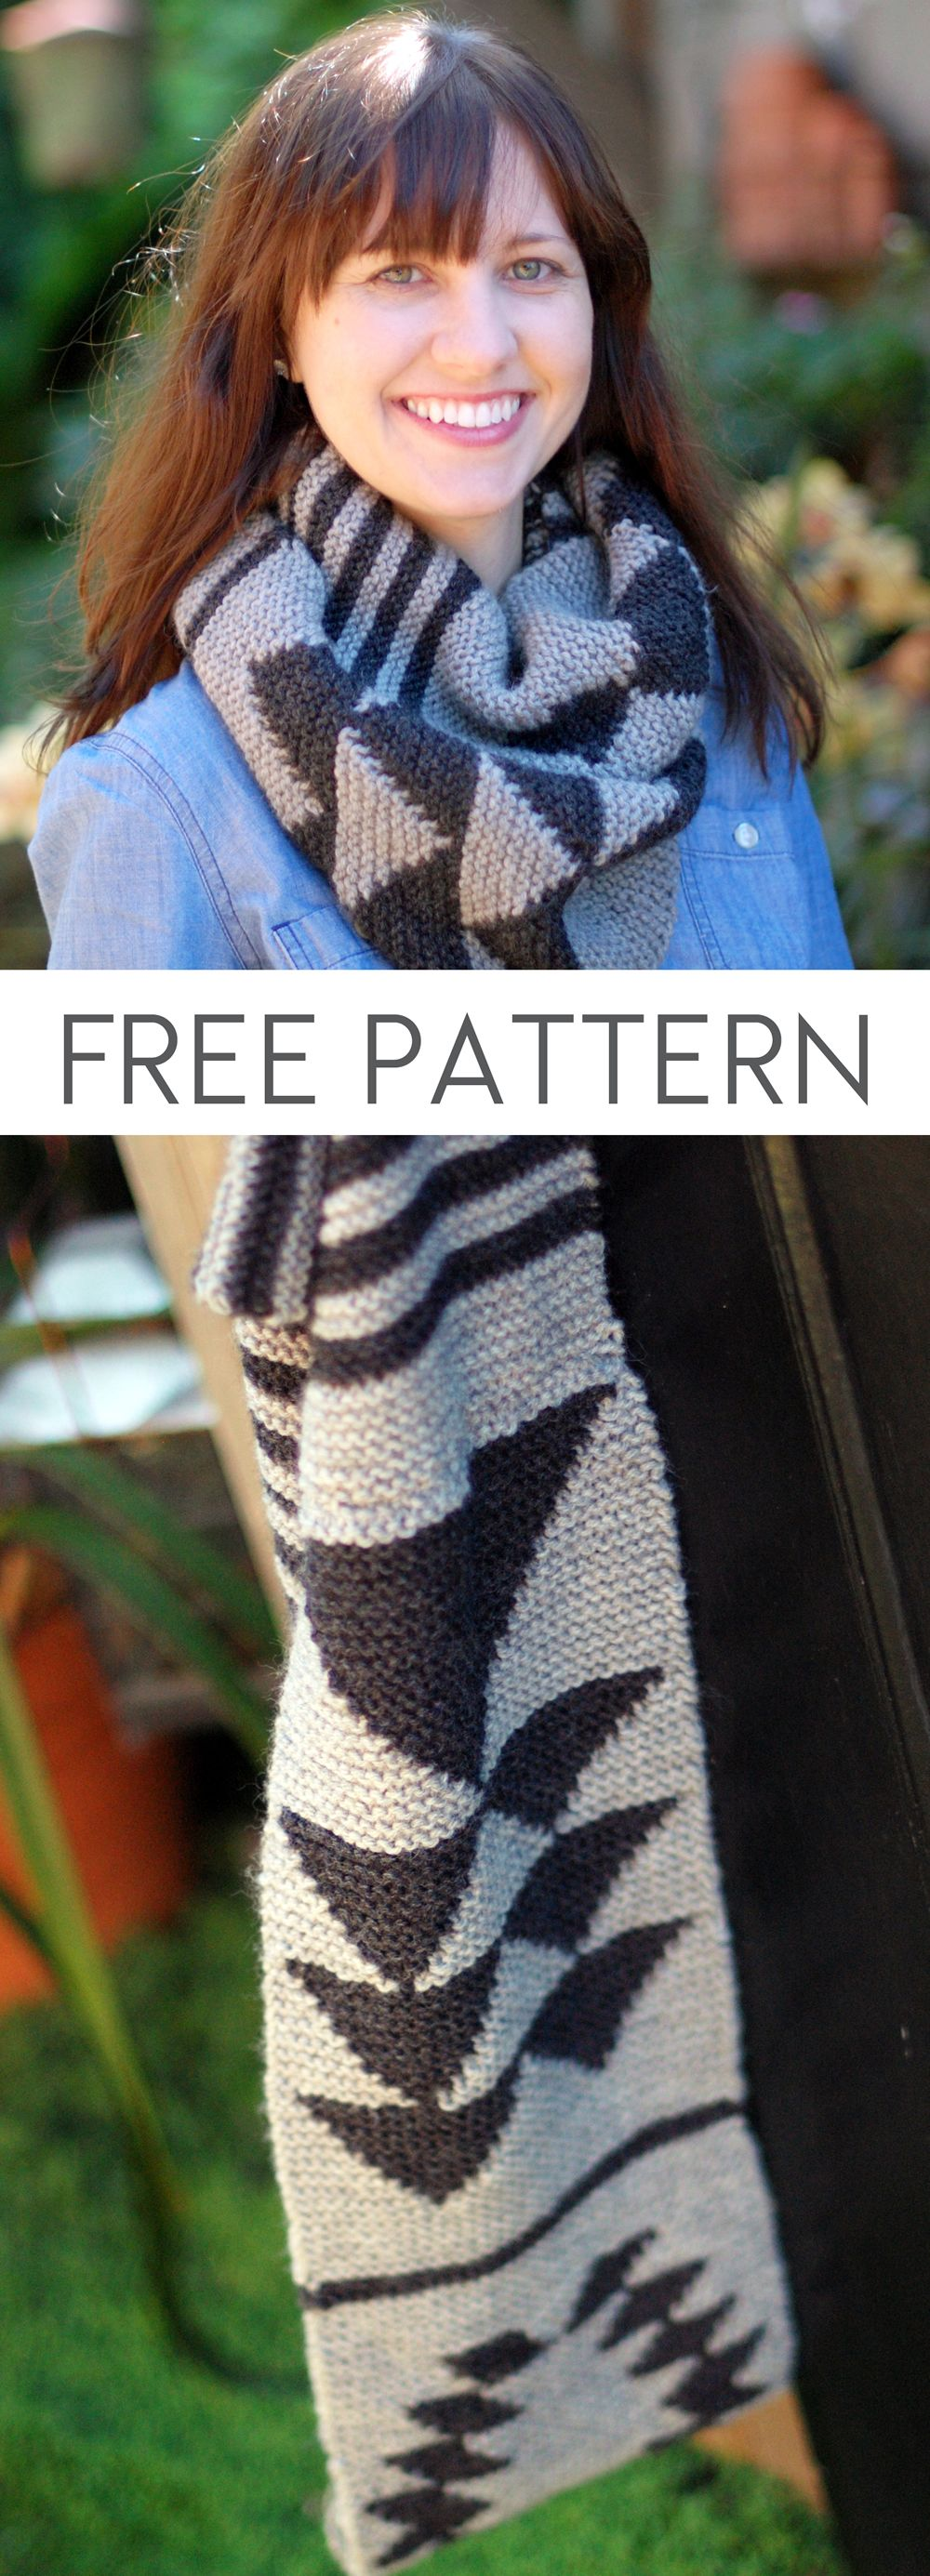 Free knitting pattern aztec infinity scarf knitted crocheted free knitting pattern aztec infinity scarf dt1010fo